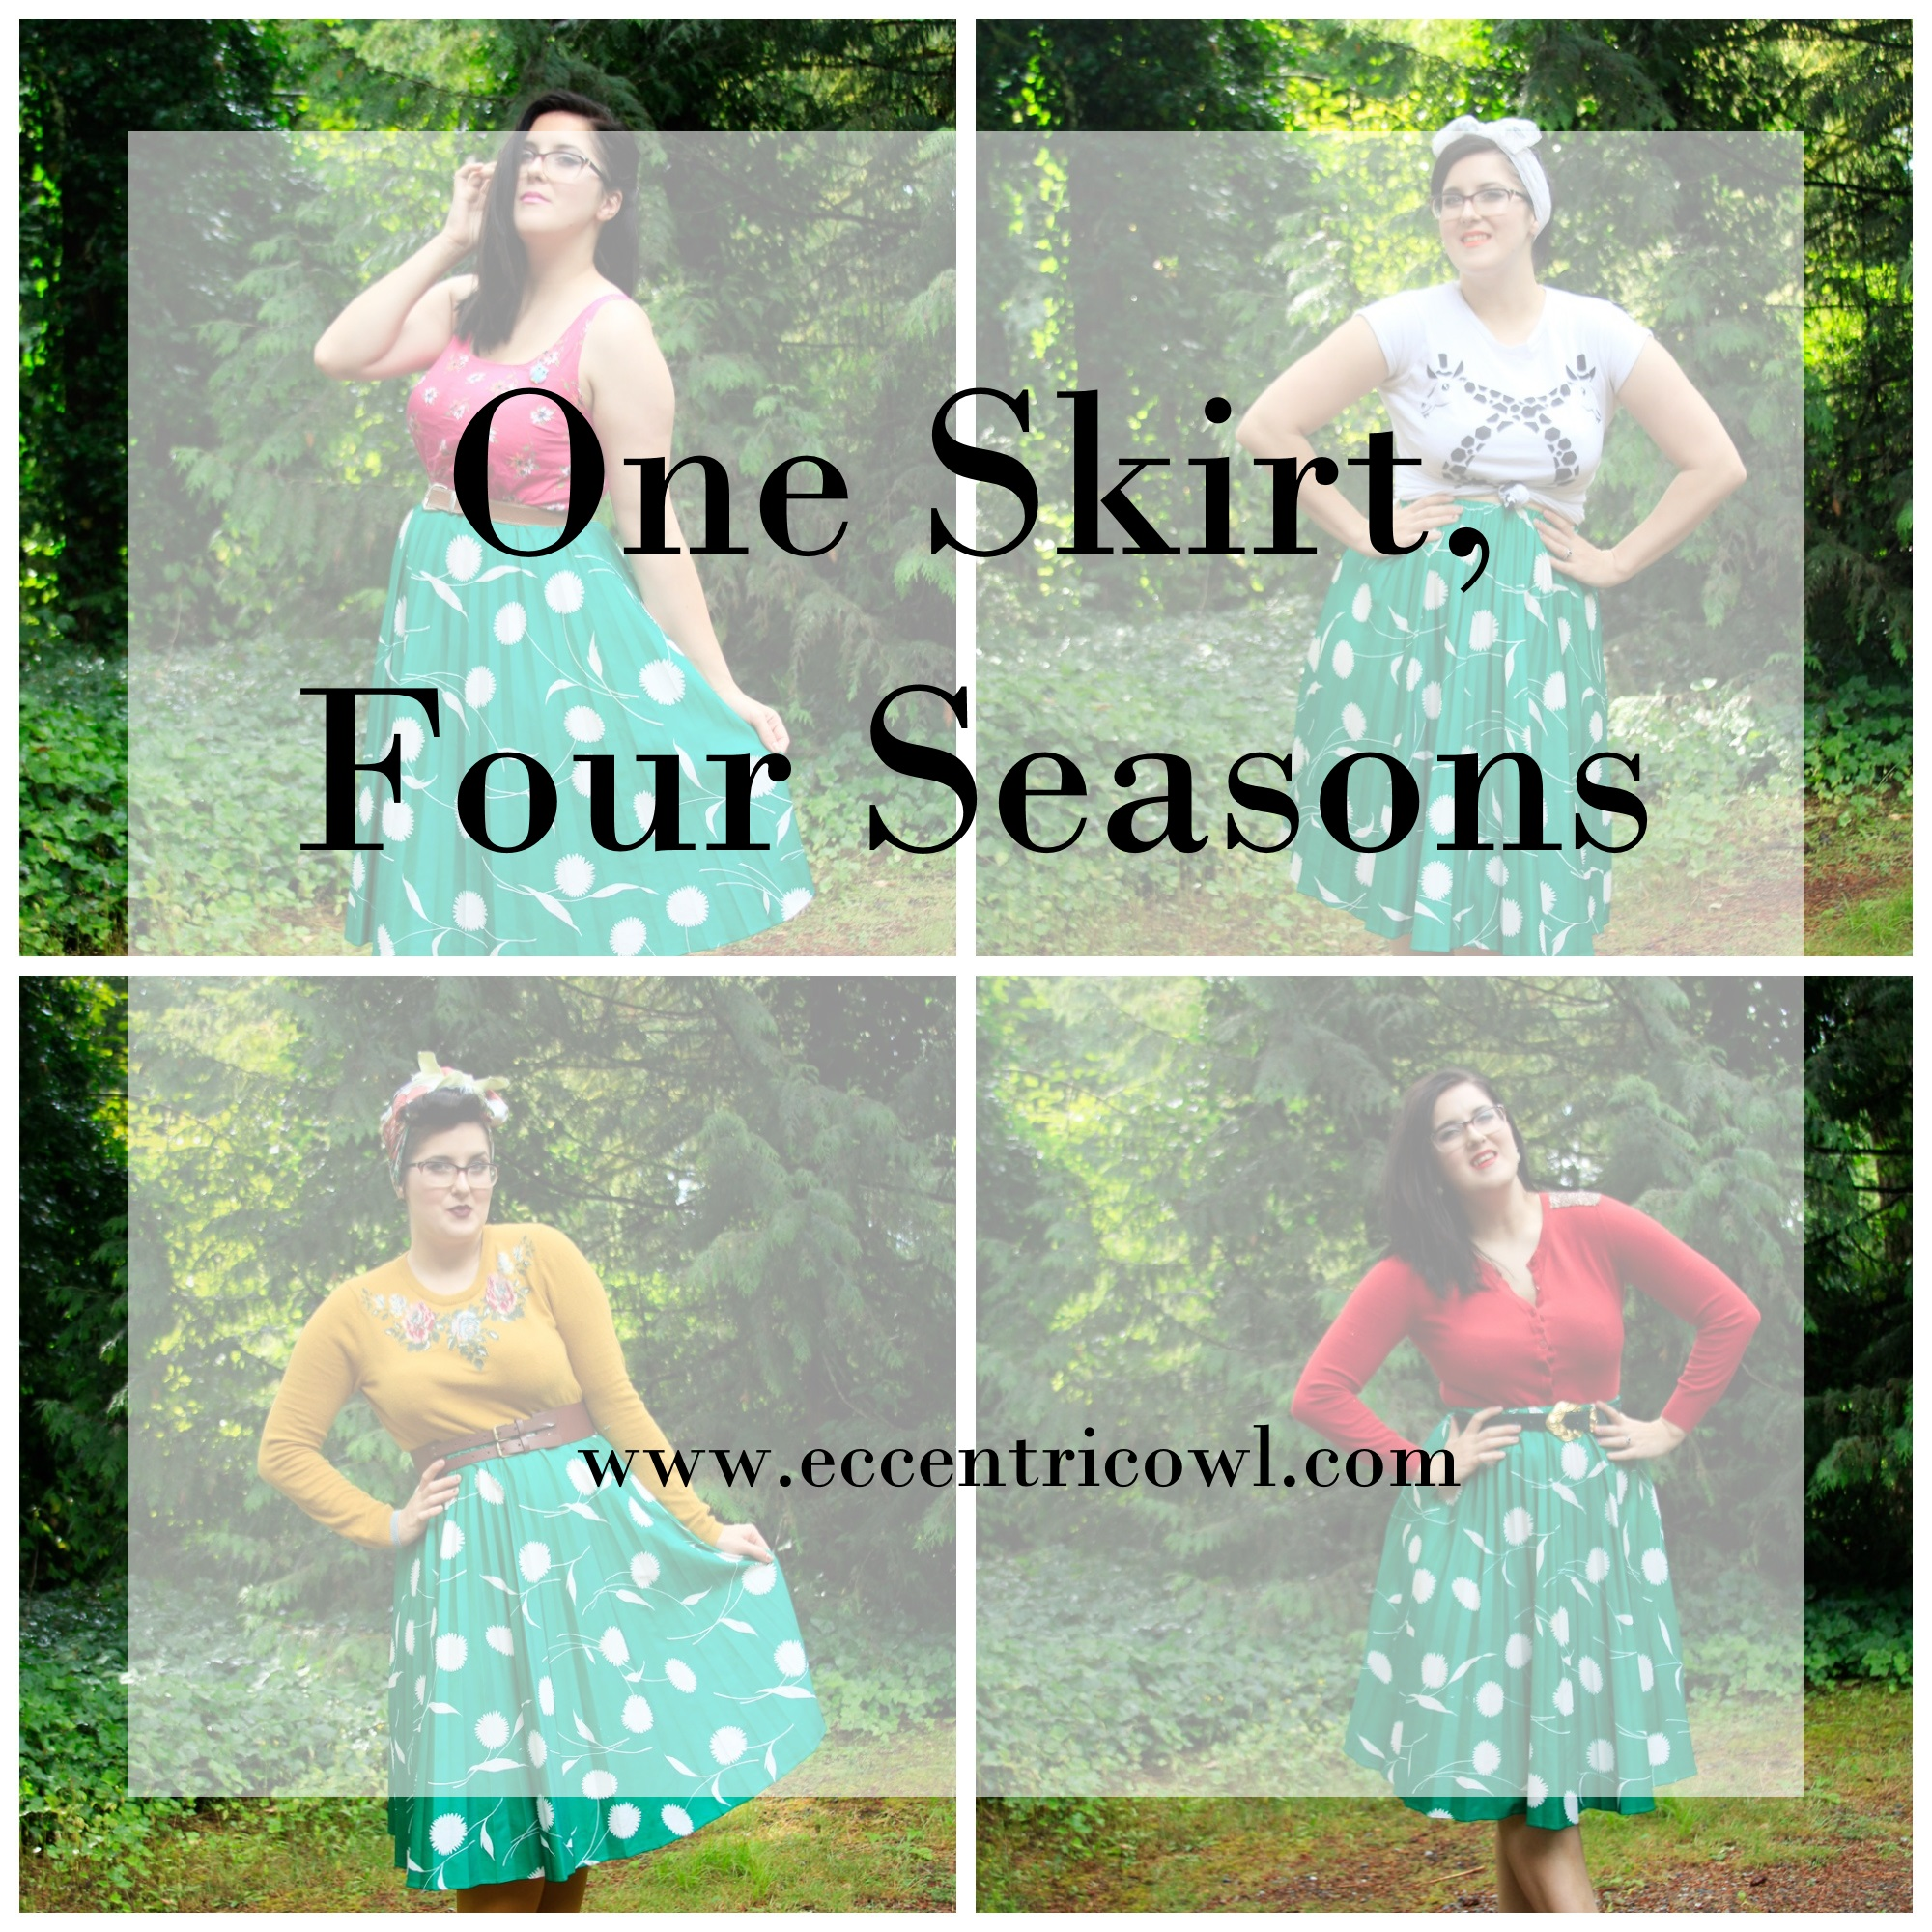 The Eccentric Owl Presents: One skirt, four seasons